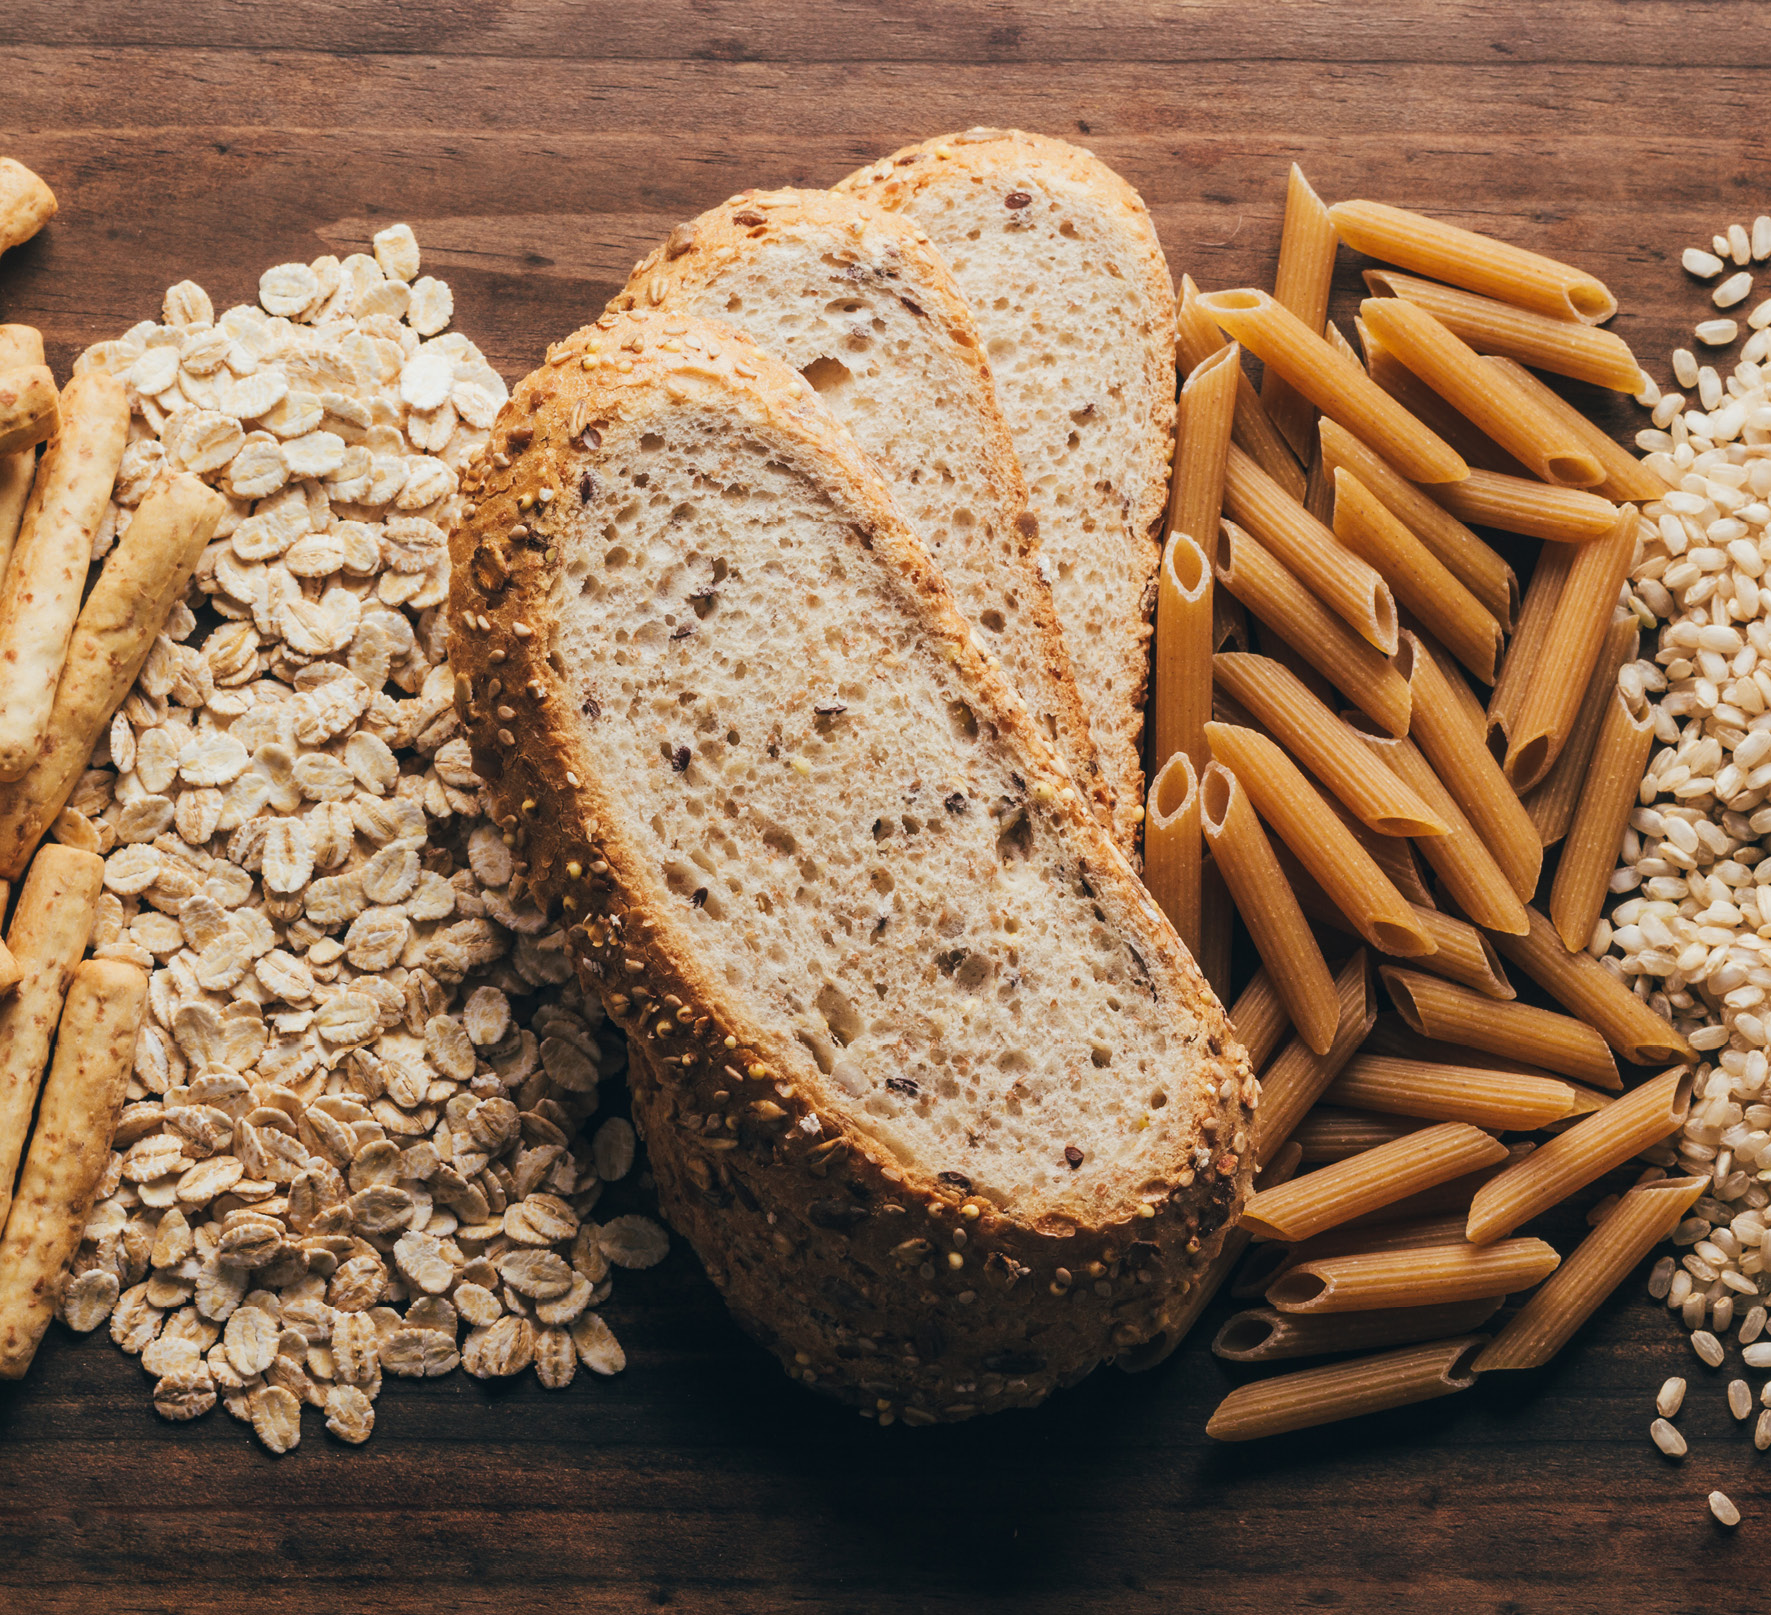 Managing Your Blood Glucose Levels With Carbohydrates